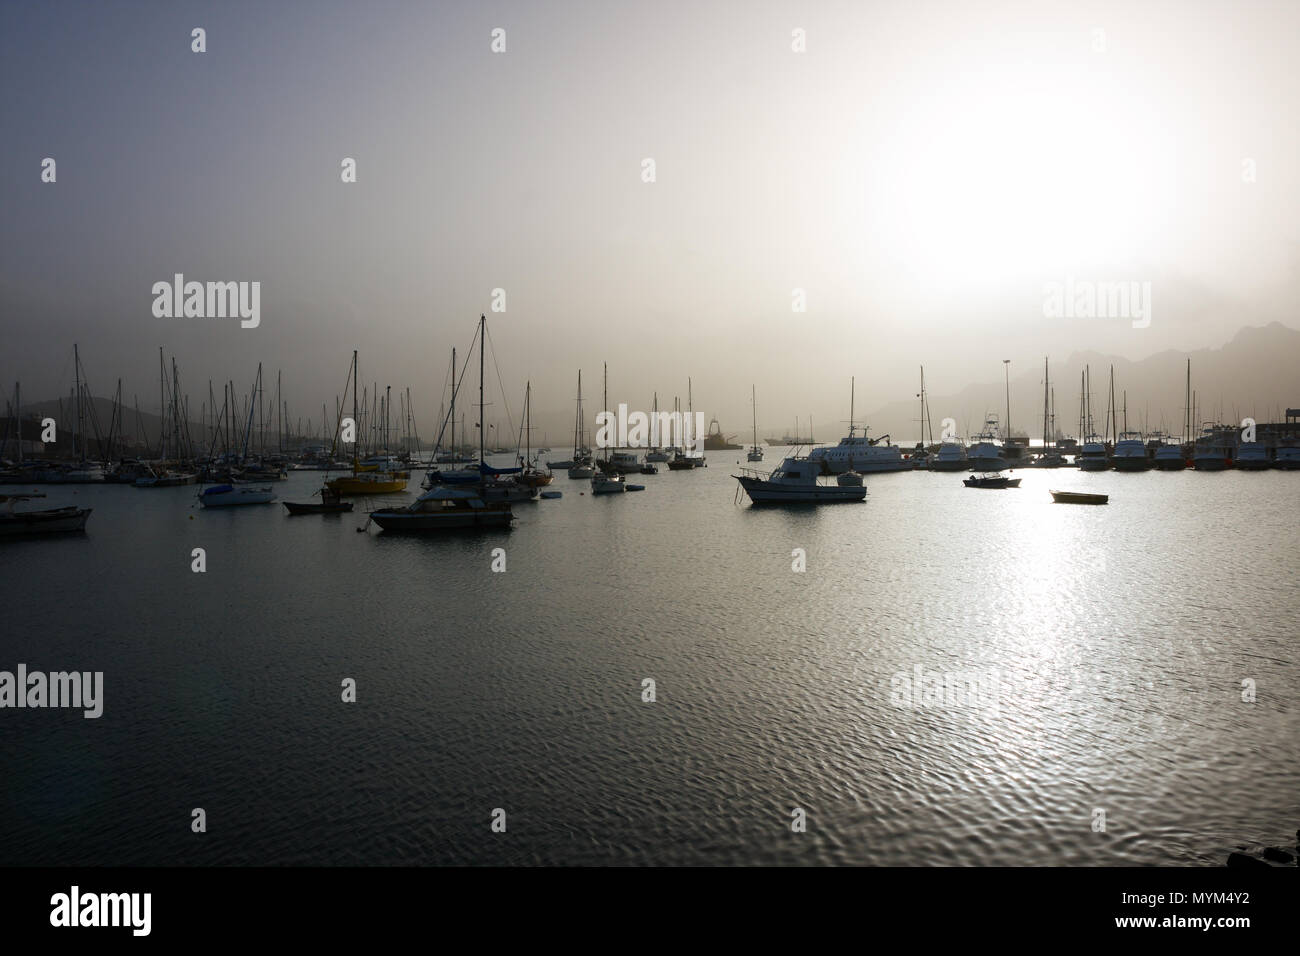 MINDELO, CAPE VERDE - DECEMBER 07, 2015: Boats and yachts in port of Sao Vicente island in bright light of the misty sunset Stock Photo